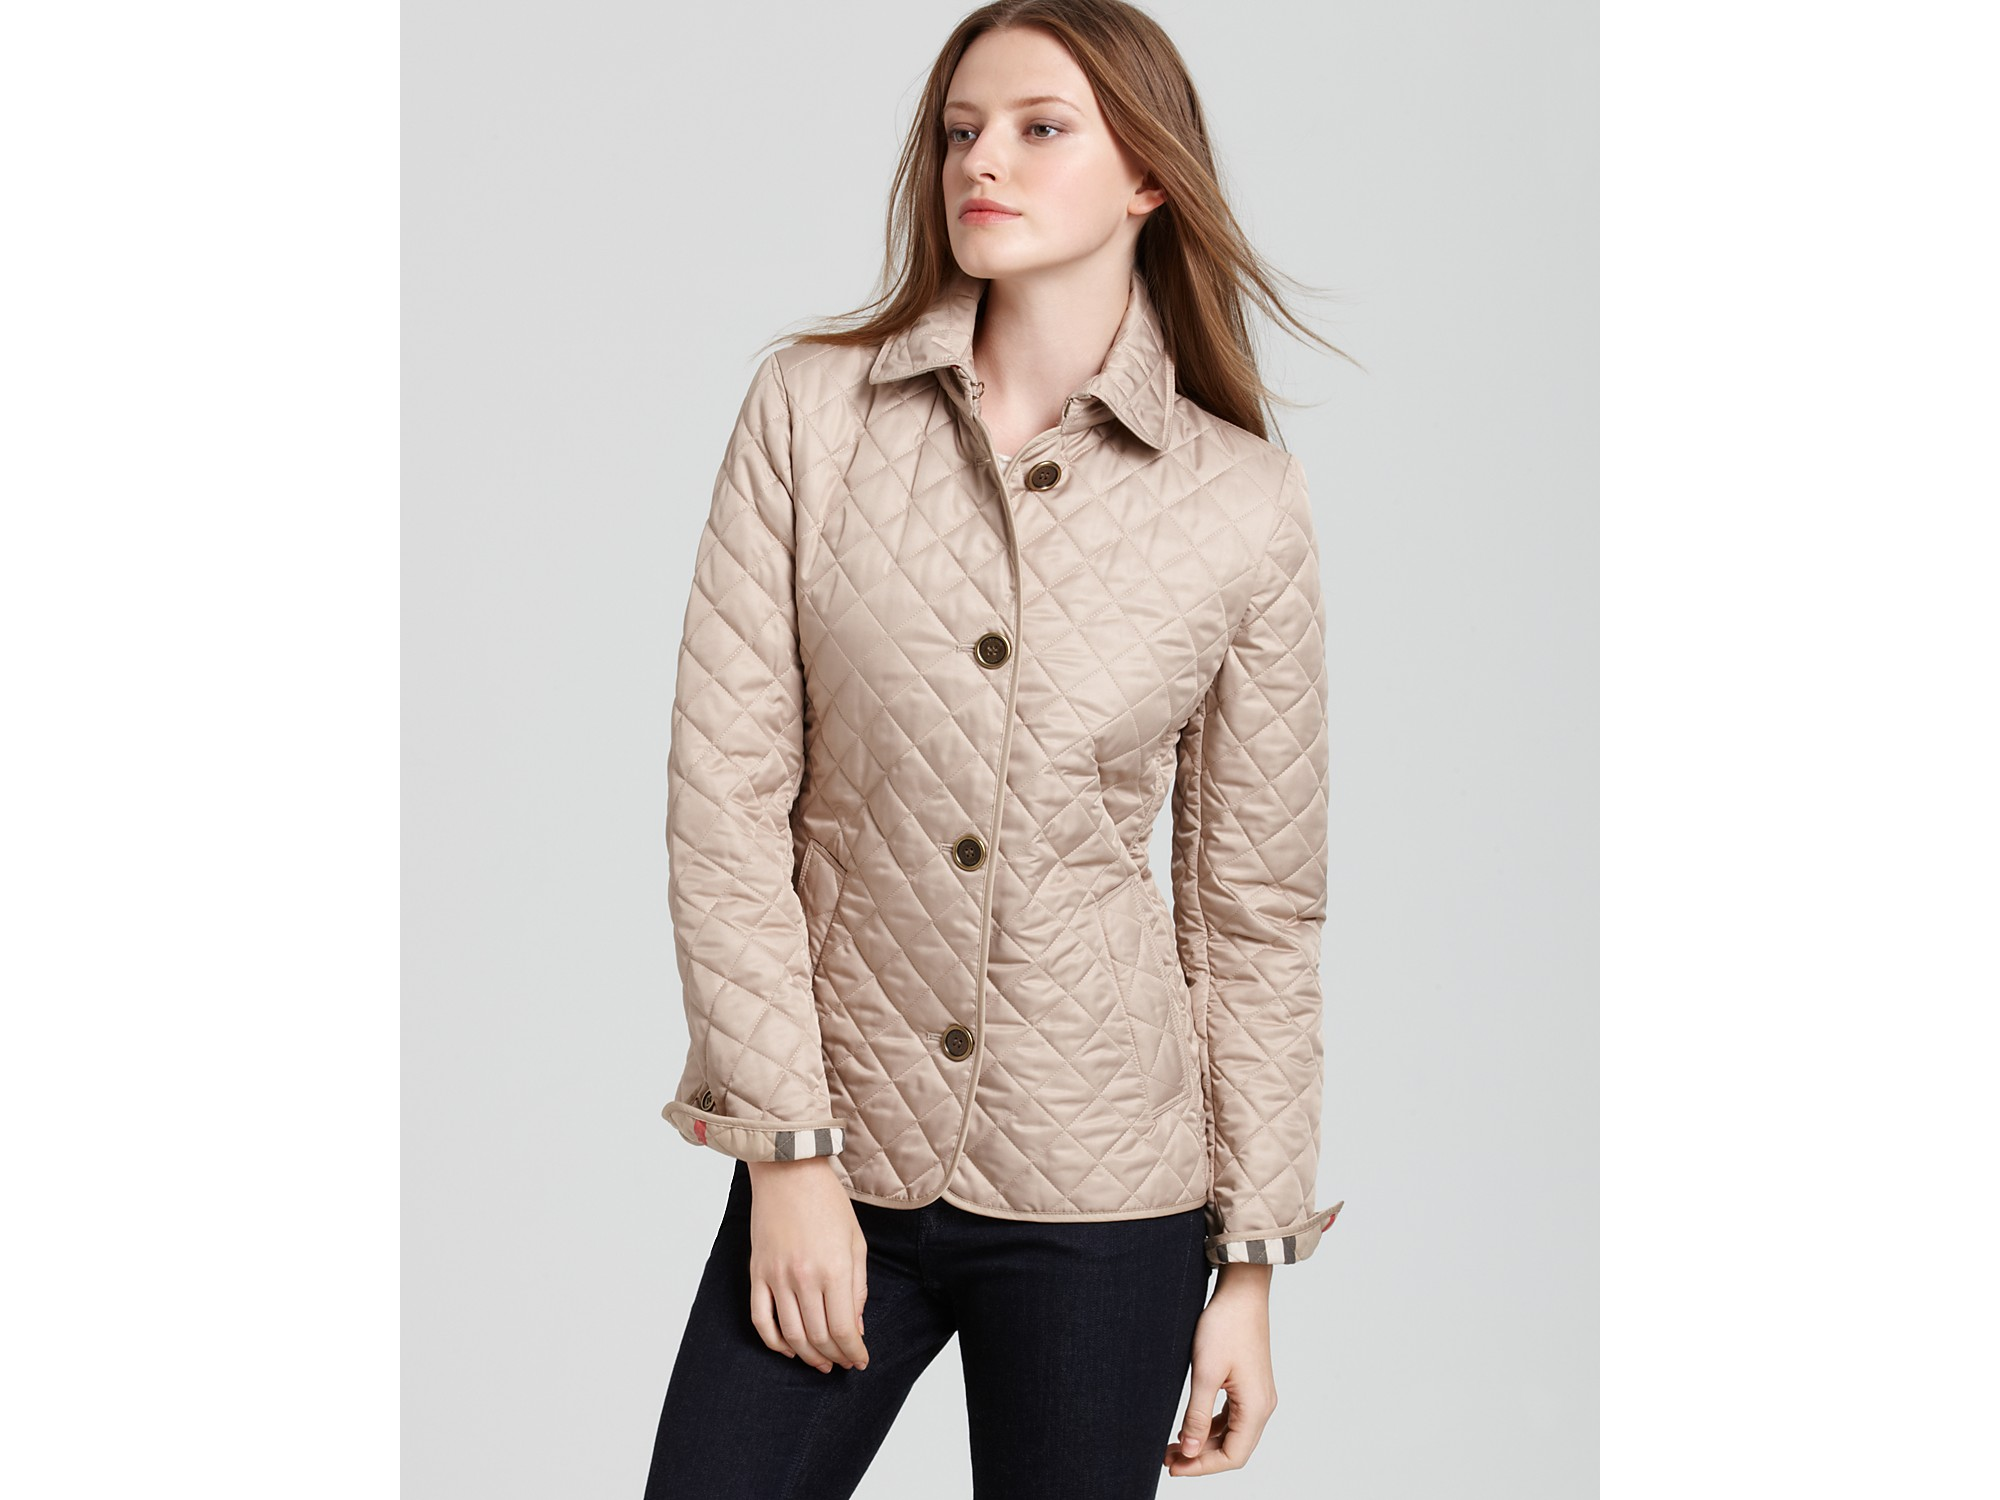 Lyst - Burberry Brit Quilted Jacket in Natural : burberry brit jacket quilted - Adamdwight.com